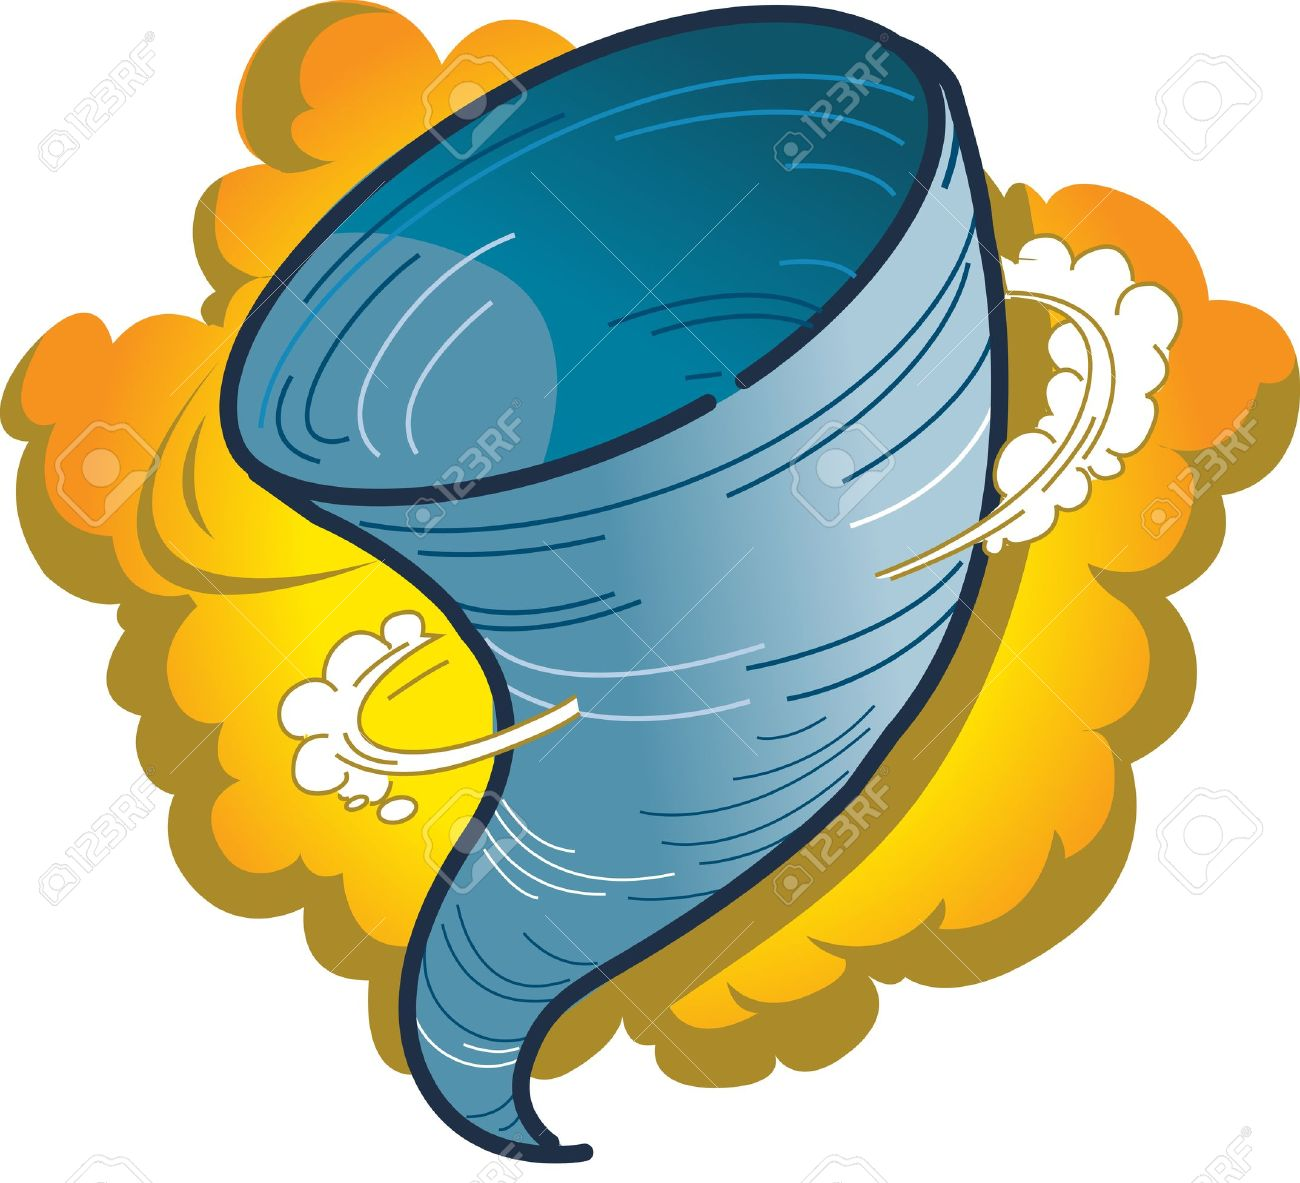 1300x1183 Cartoon Graphic Of A Tornado, Hurricane Or Water Spout Royalty